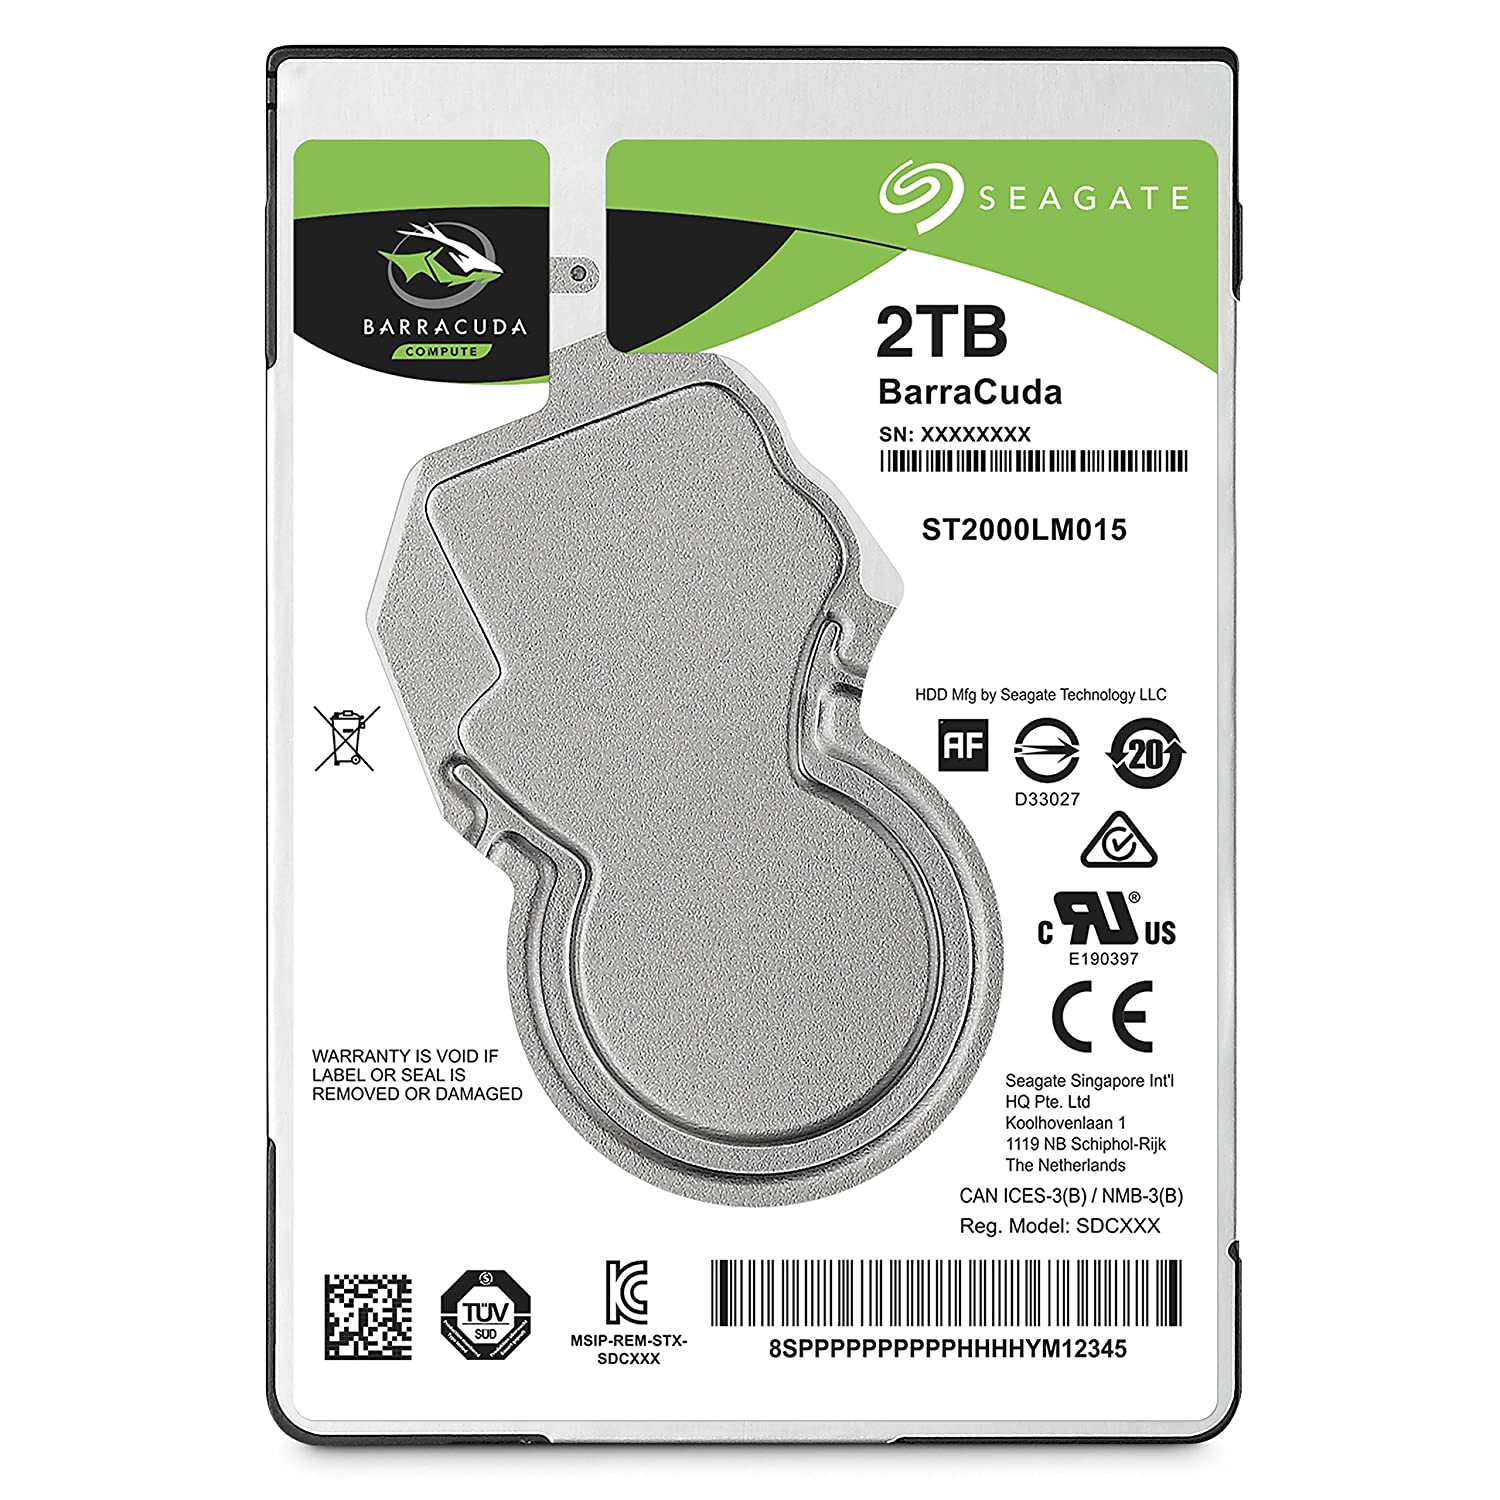 Seagate 2TB Barracuda ST2000LM015 is the best hard drive replacement for PS4